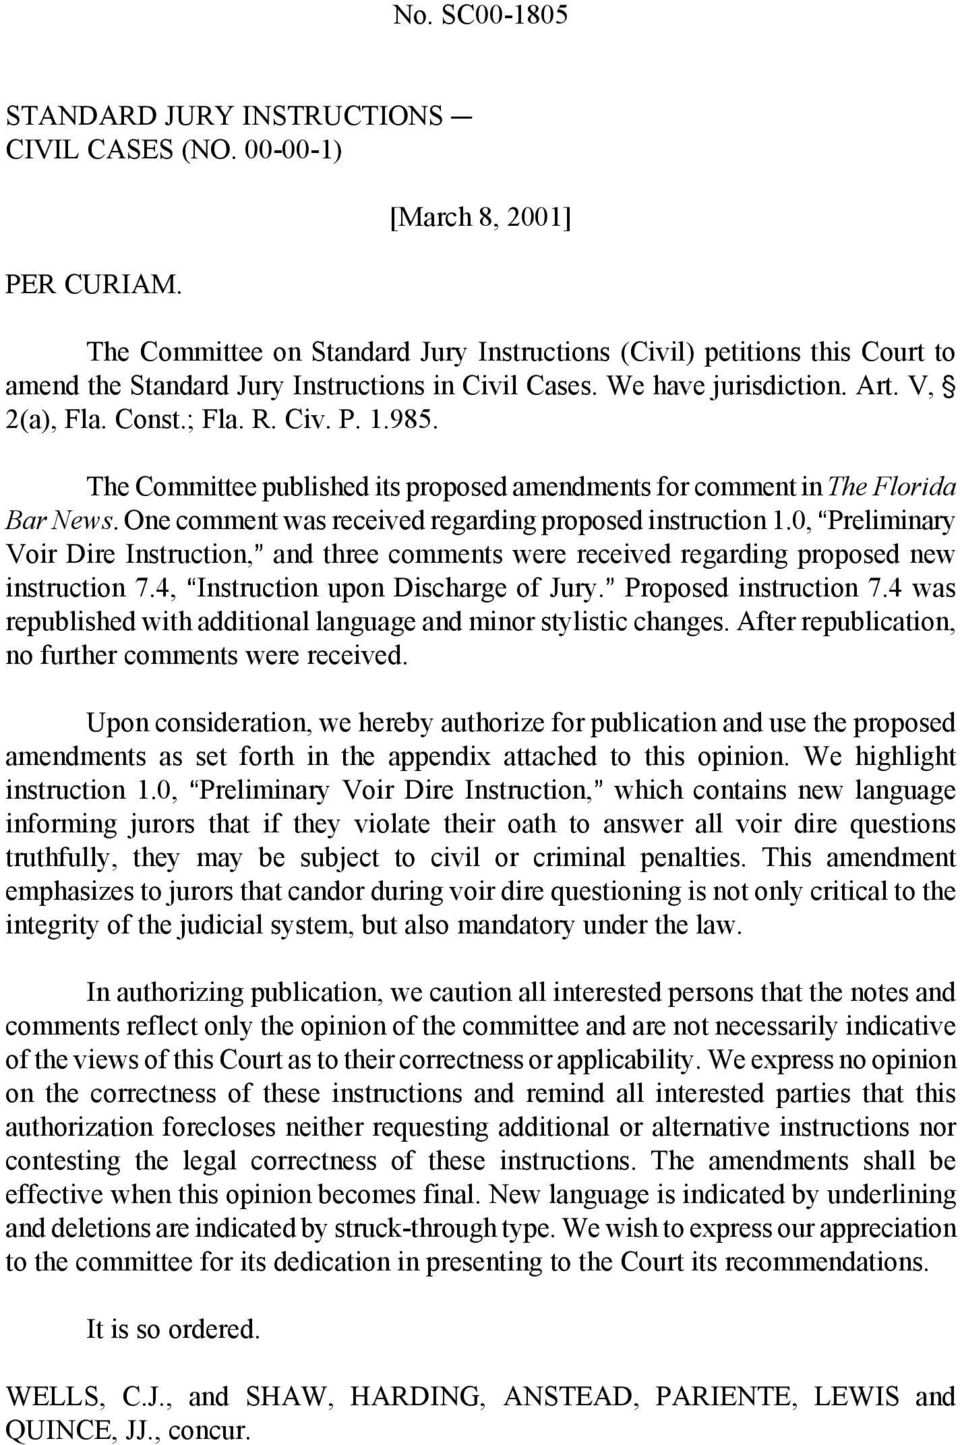 R. Civ. P. 1.985. The Committee published its proposed amendments for comment in The Florida Bar News. One comment was received regarding proposed instruction 1.